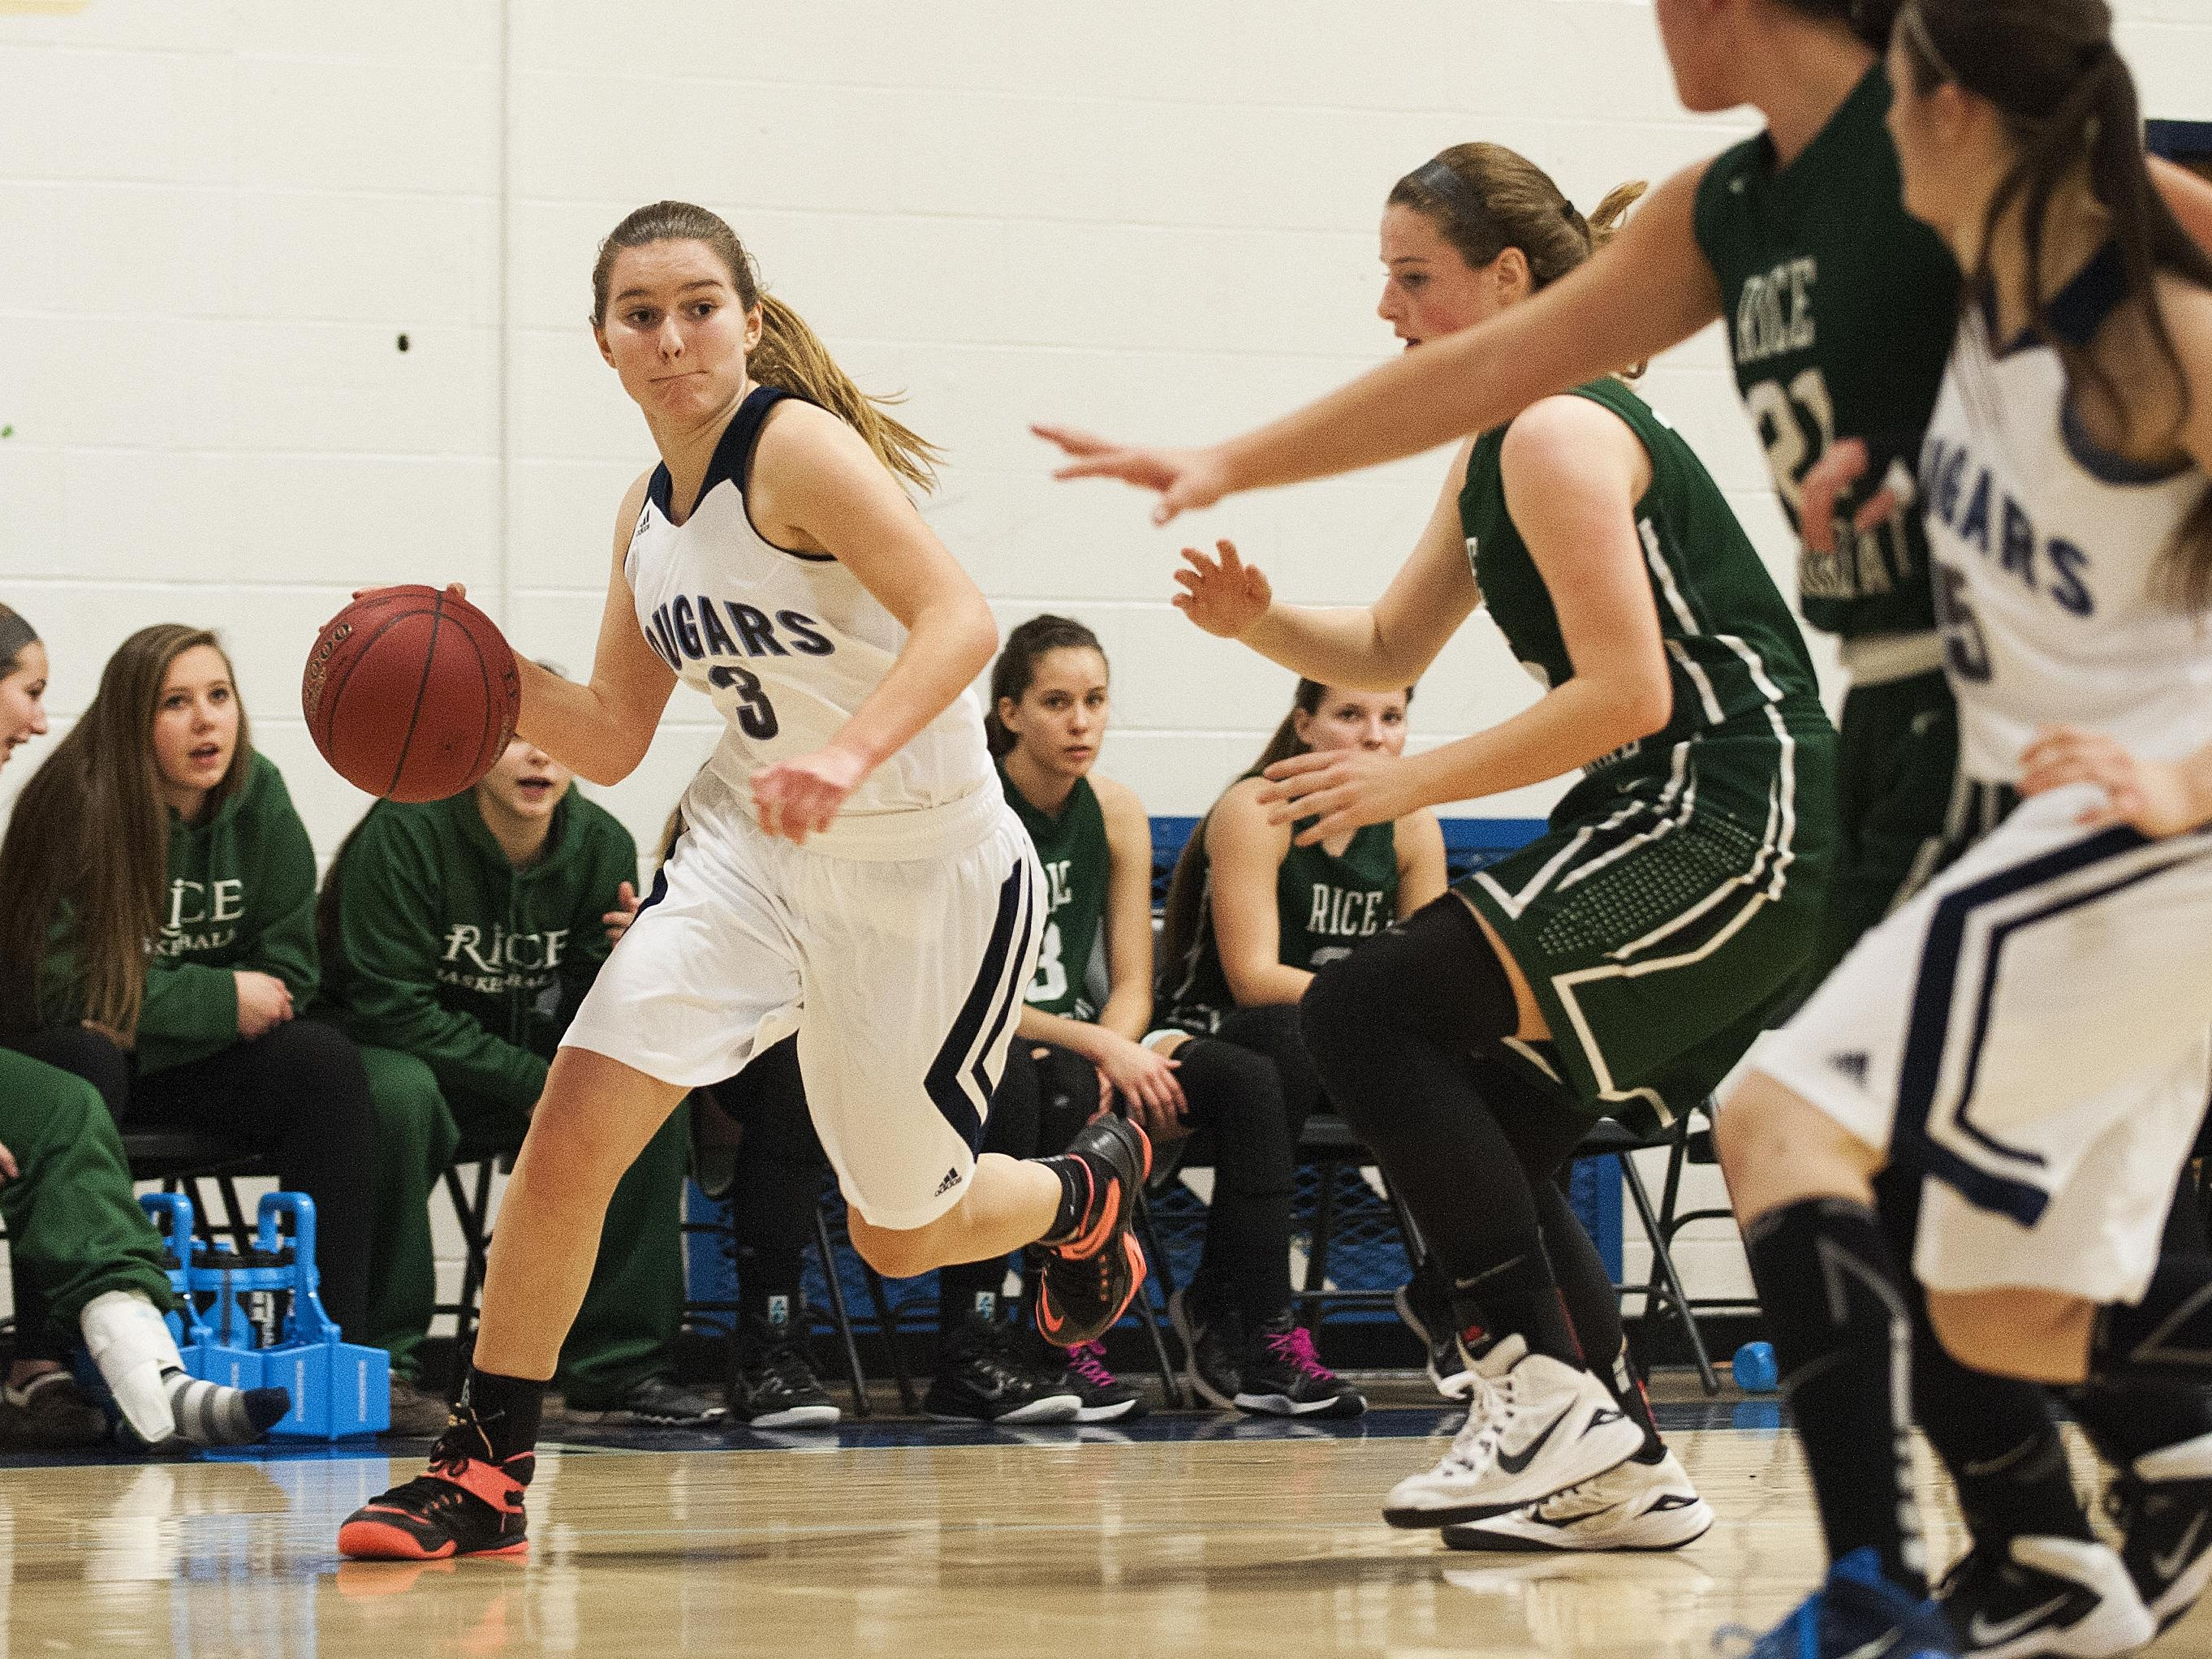 Mount Mansfield guard Grace Pontius (3) drives to the hoop during the girls basketball game between the Rice Green knights and the Mount Mansfield Cougars at MMU High School on Friday night December 4, 2015 in Jericho.